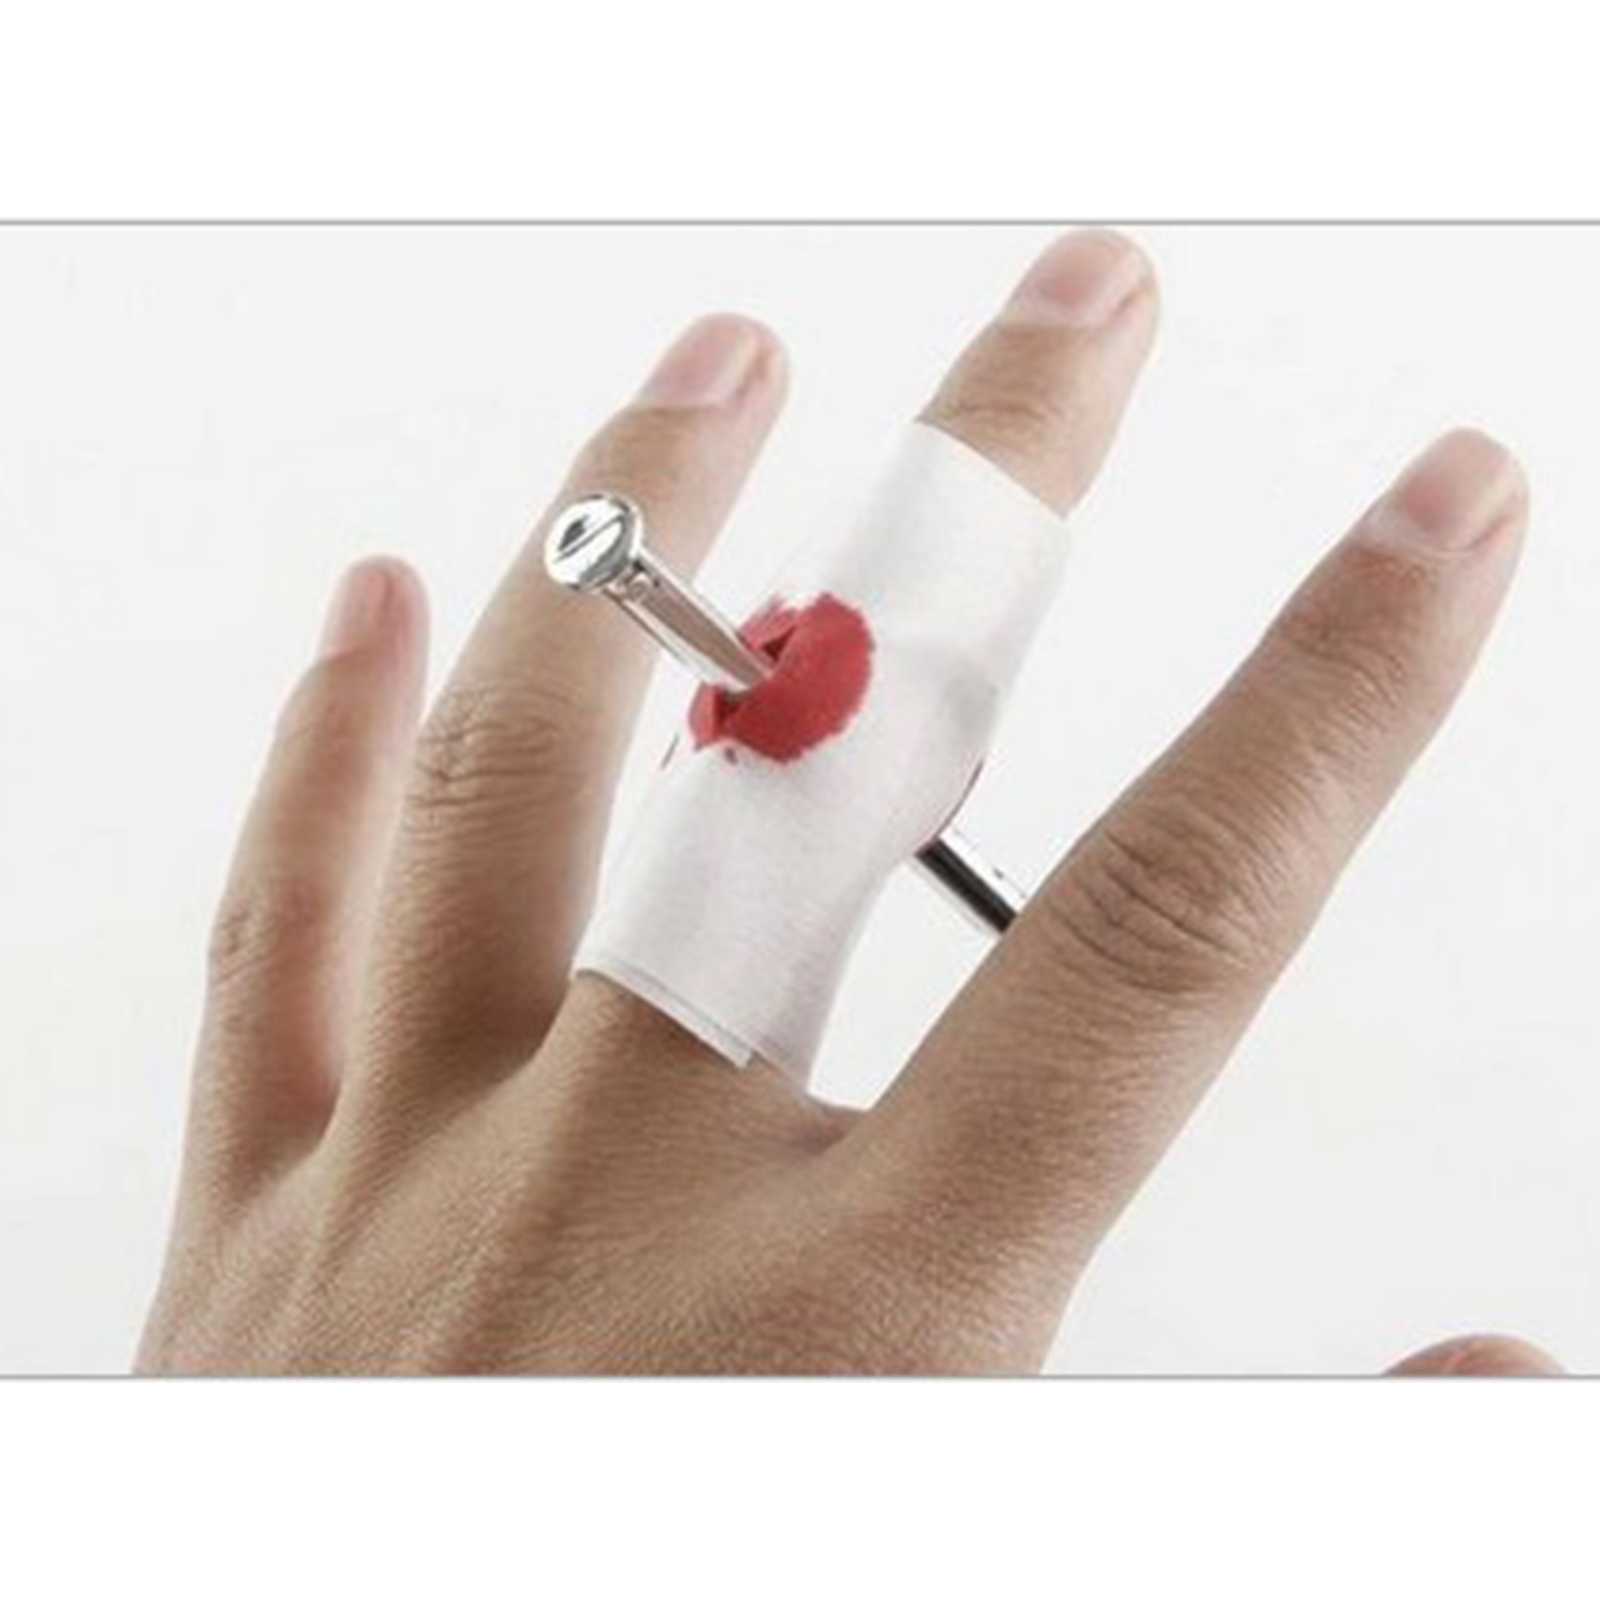 New Prank Joke Toy Fake Nail Through Finger With Bandage Scary Game April Fool Trick Prop Scary Toy Halloween Jokes image